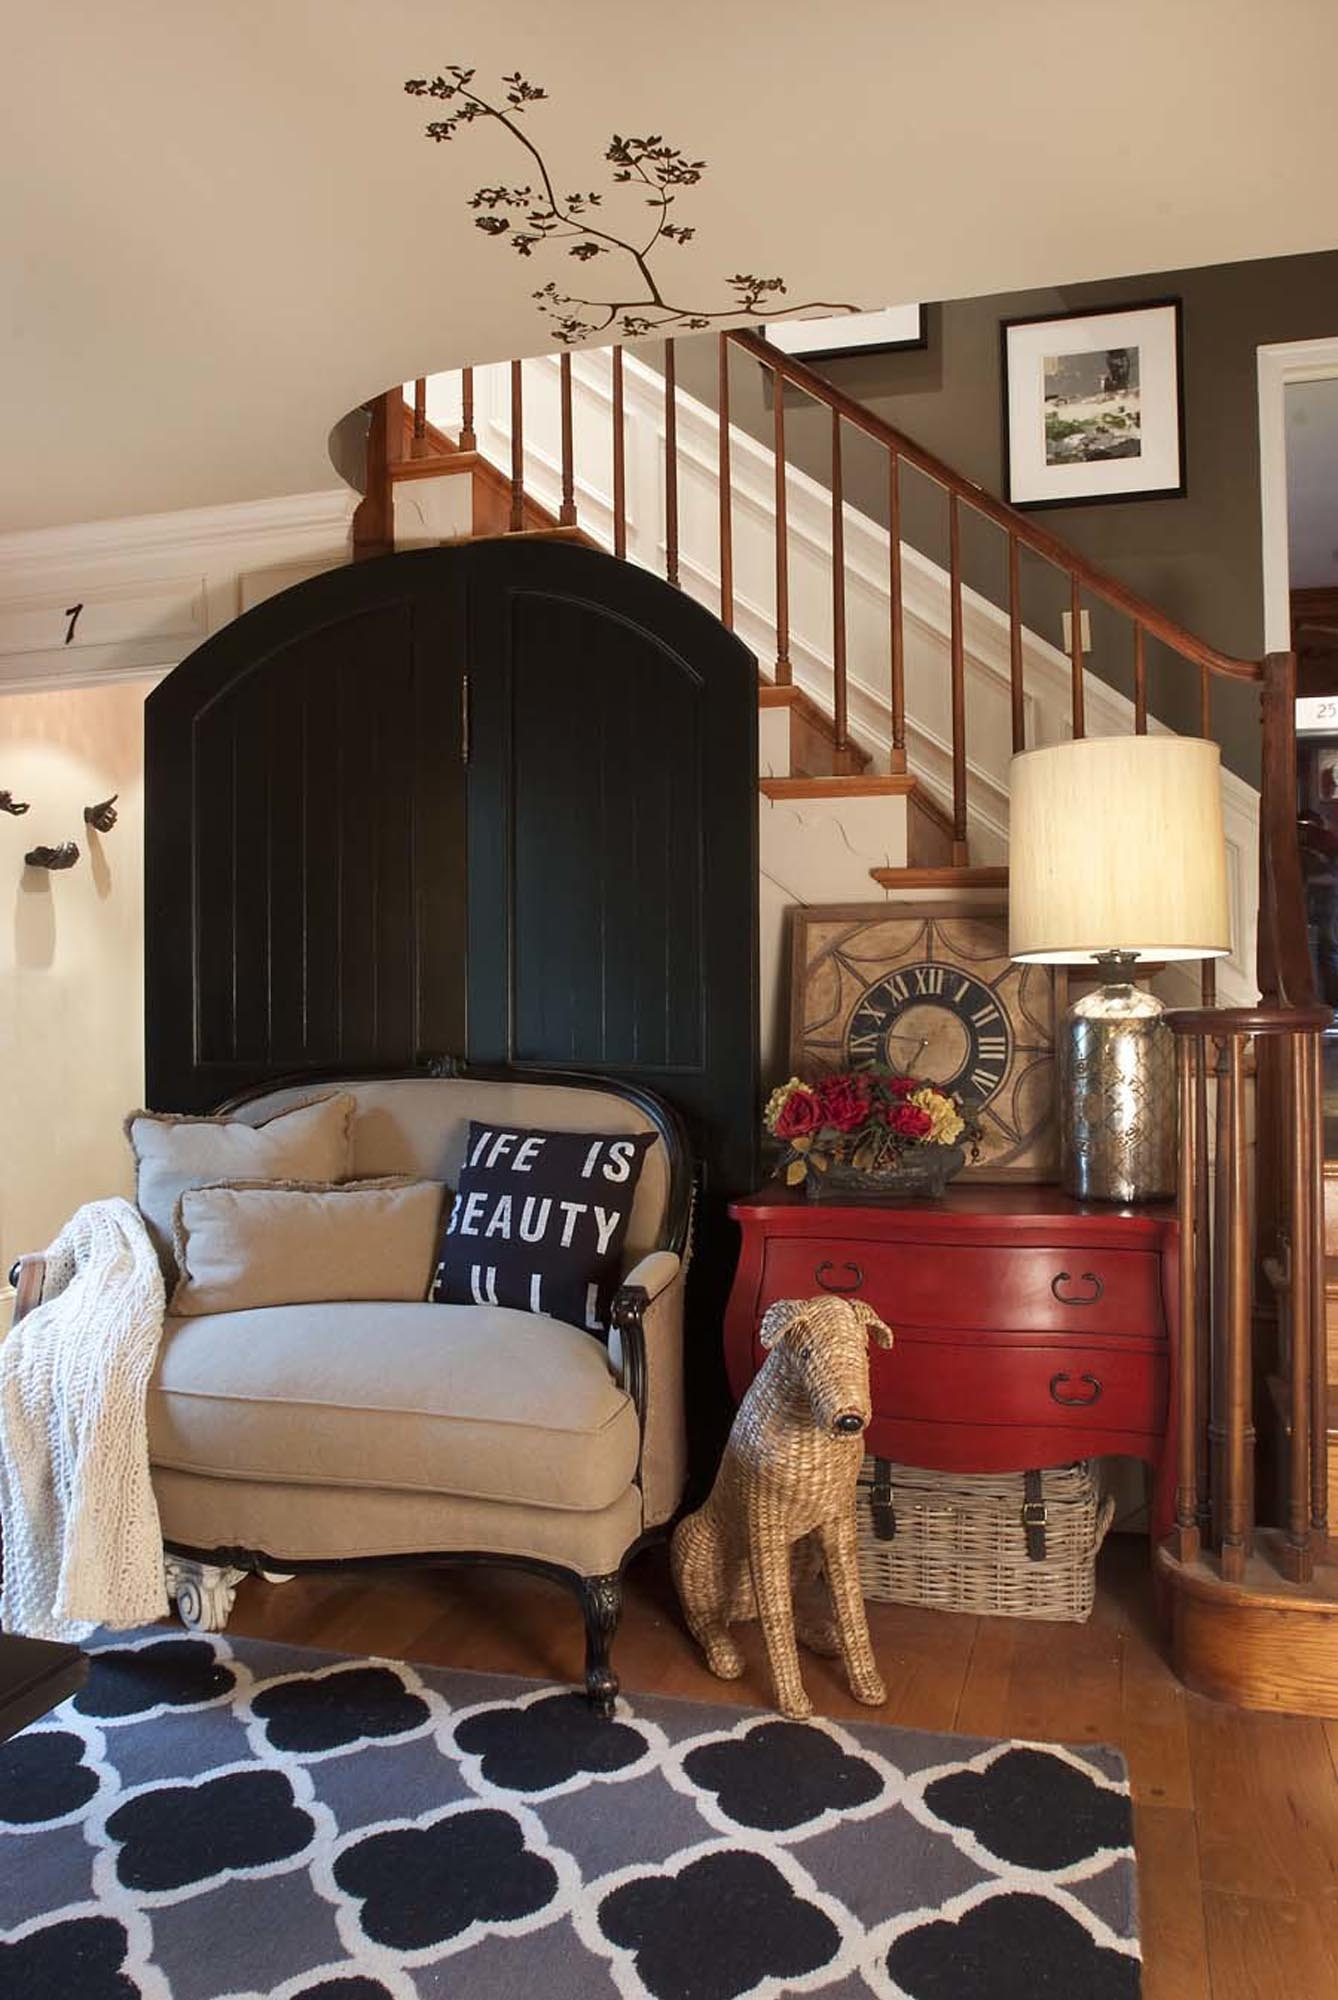 Comfortable seating area with soft loveseat and burlap style stuffed dog and red dresser